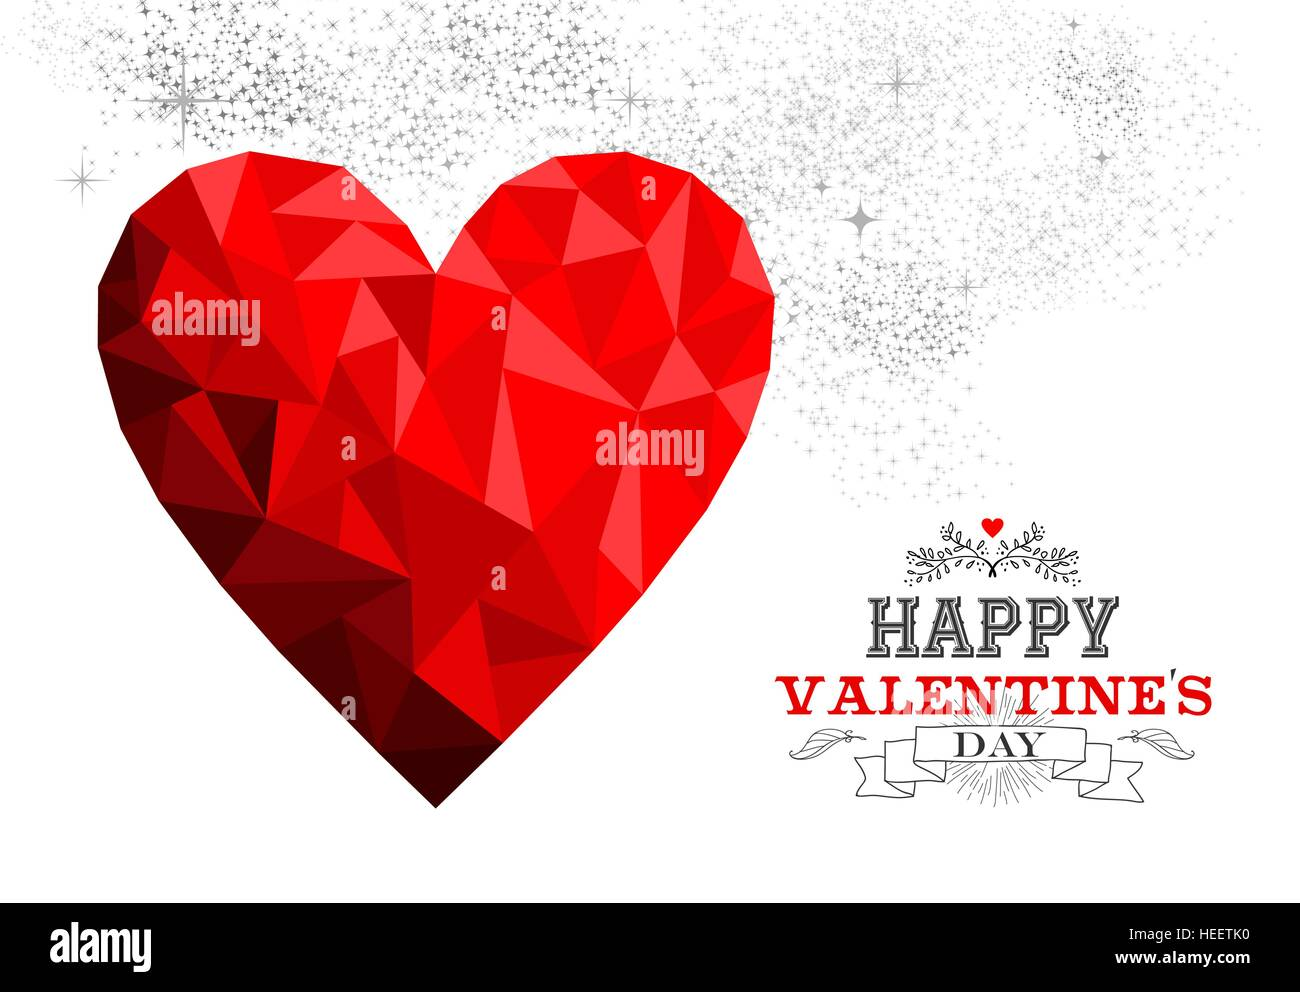 happy valentines day greetings text